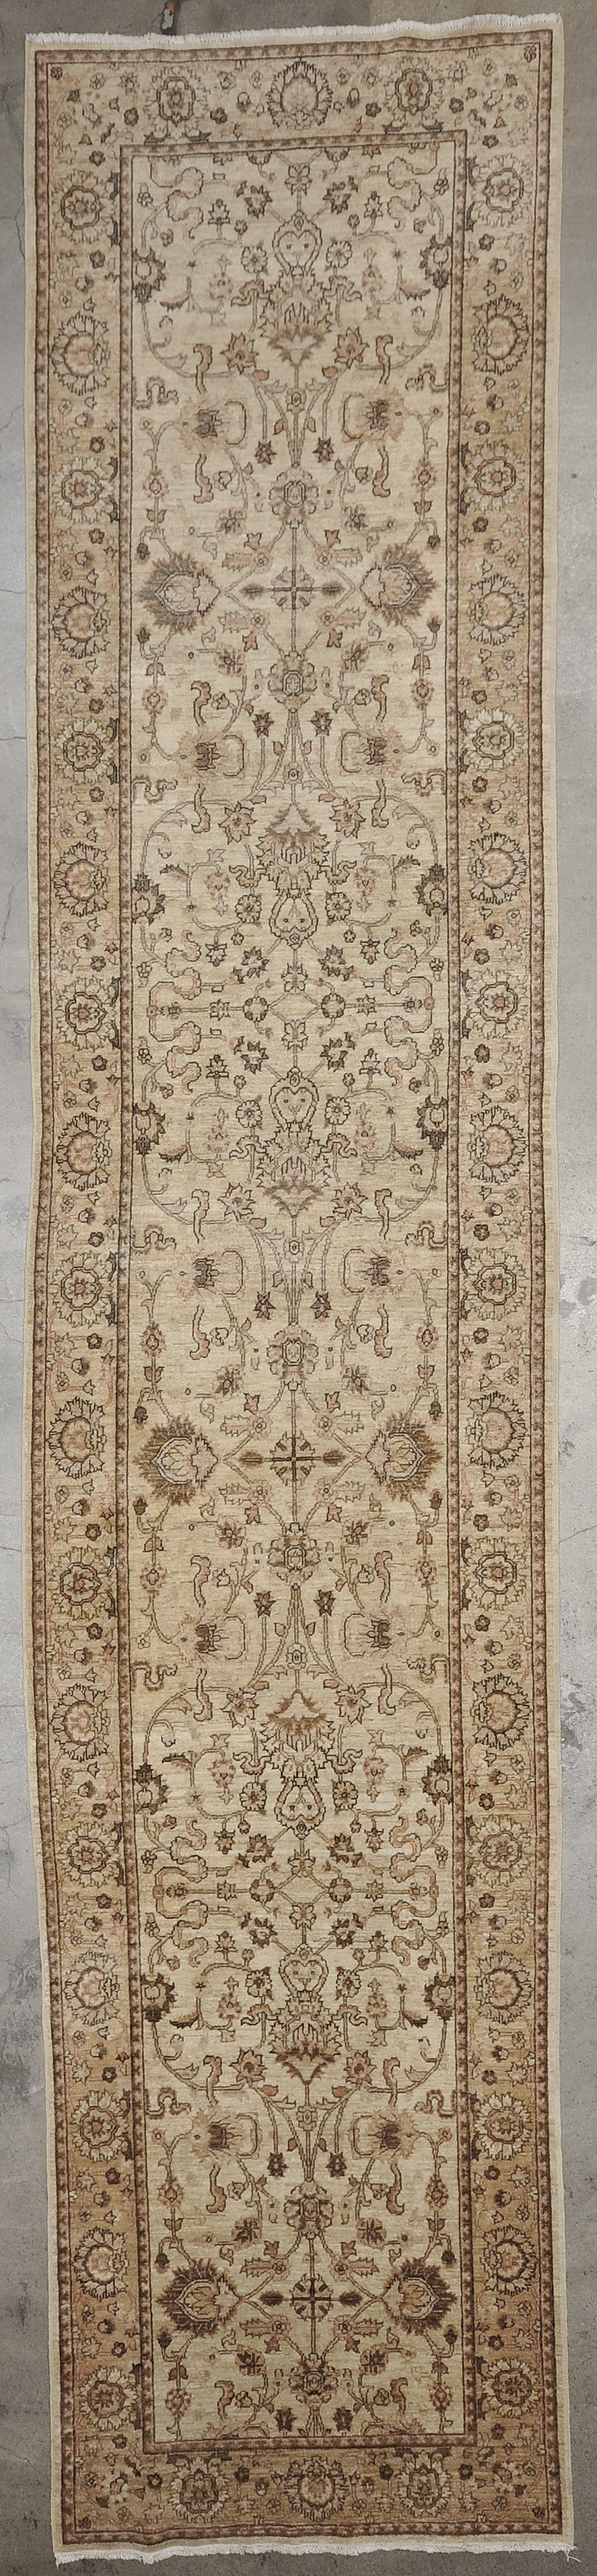 Ziegler & Co Oushak rugs and more oriental carpet 33426-